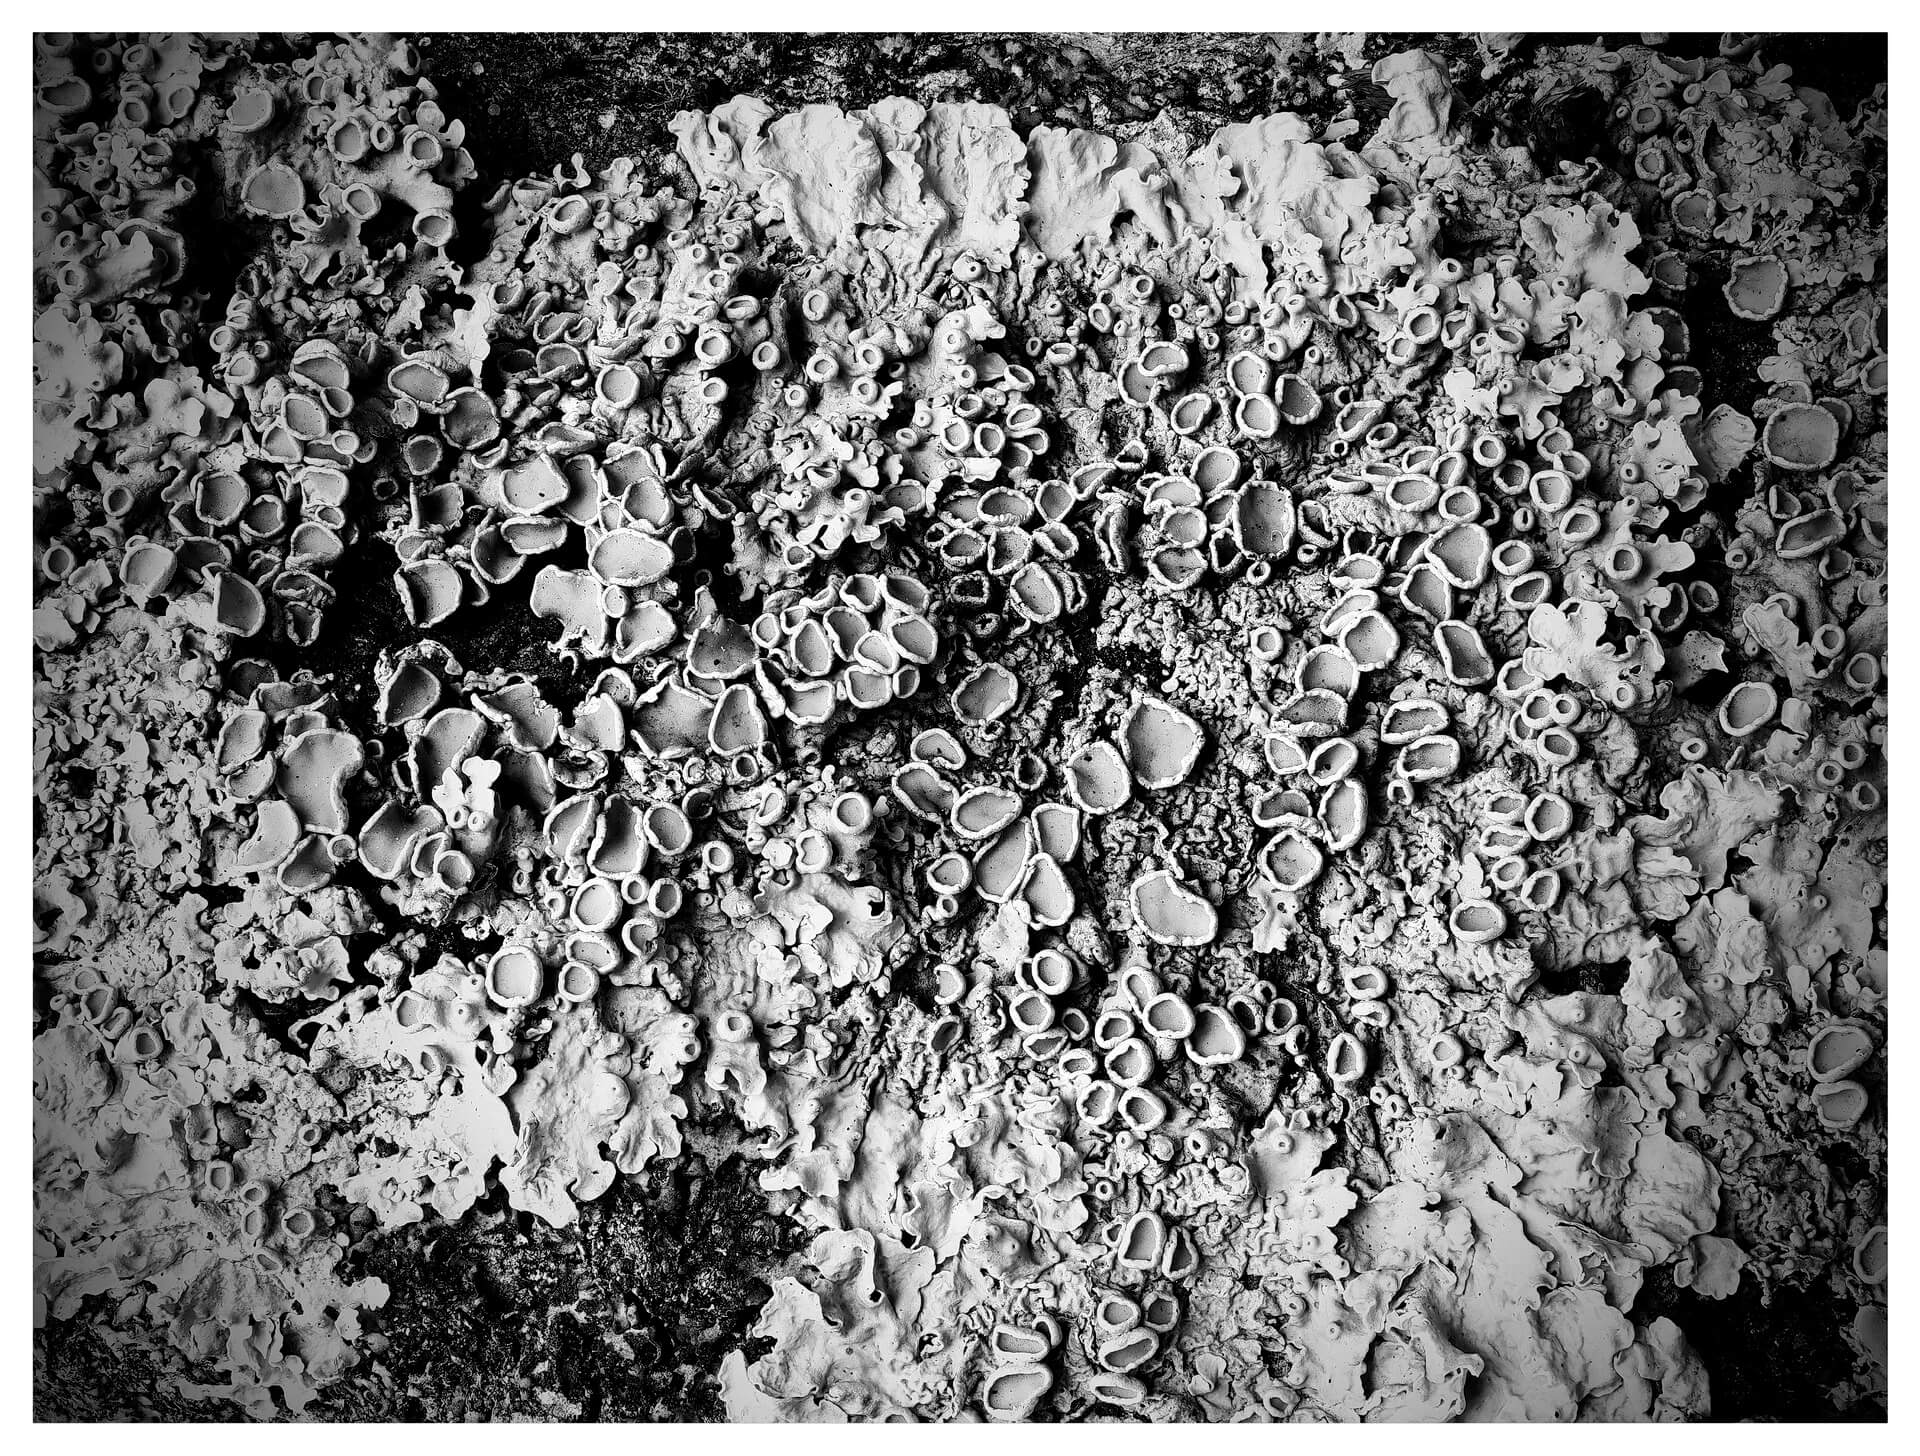 Lichen (in black and white)